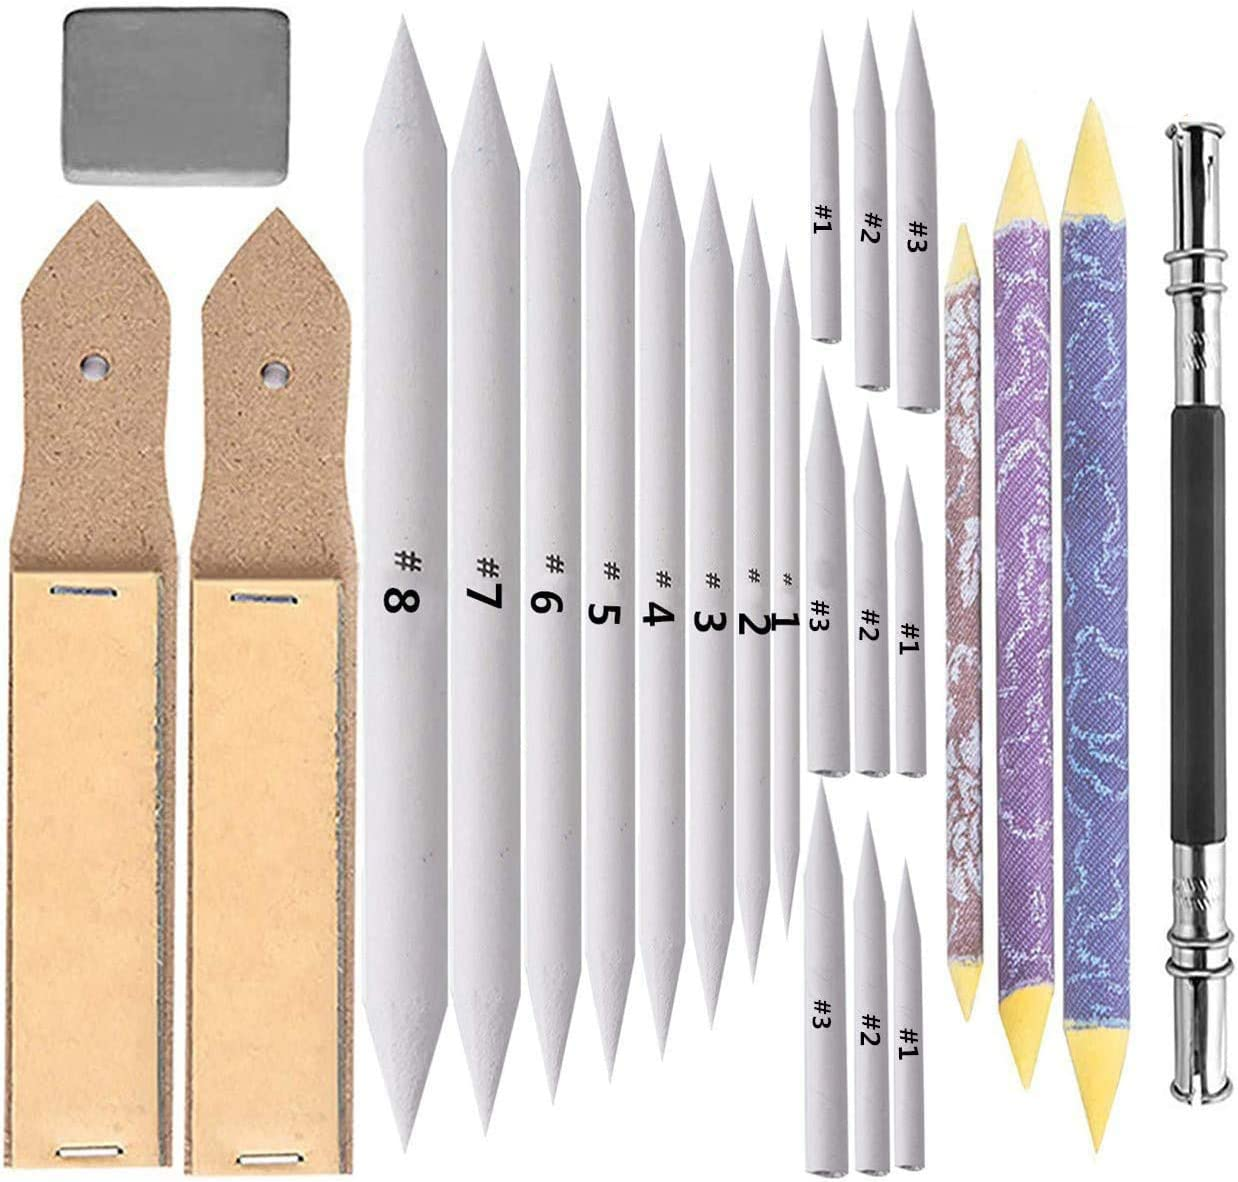 20 Pieces Blending Stumps and Tortillions Set with 2 Pcs Sandpaper Pencil Sharpener 1 Pencil Extension Tool and 1 Eraser for Student Sketch Drawing Accessories